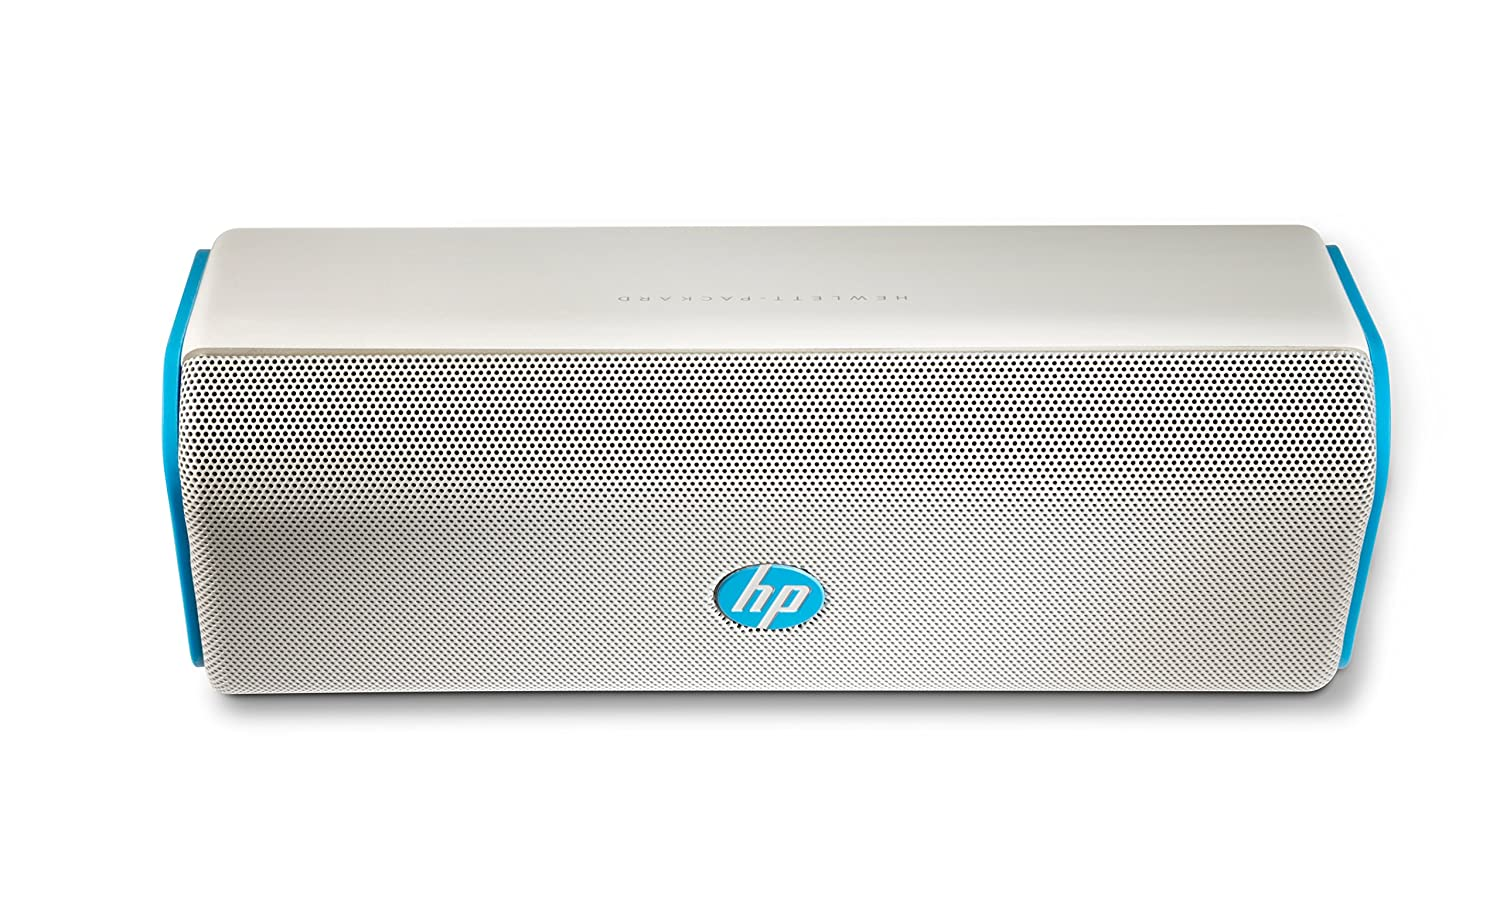 HP Roar Plus Altoparlante Wireless, Turchesi al miglior prezzo